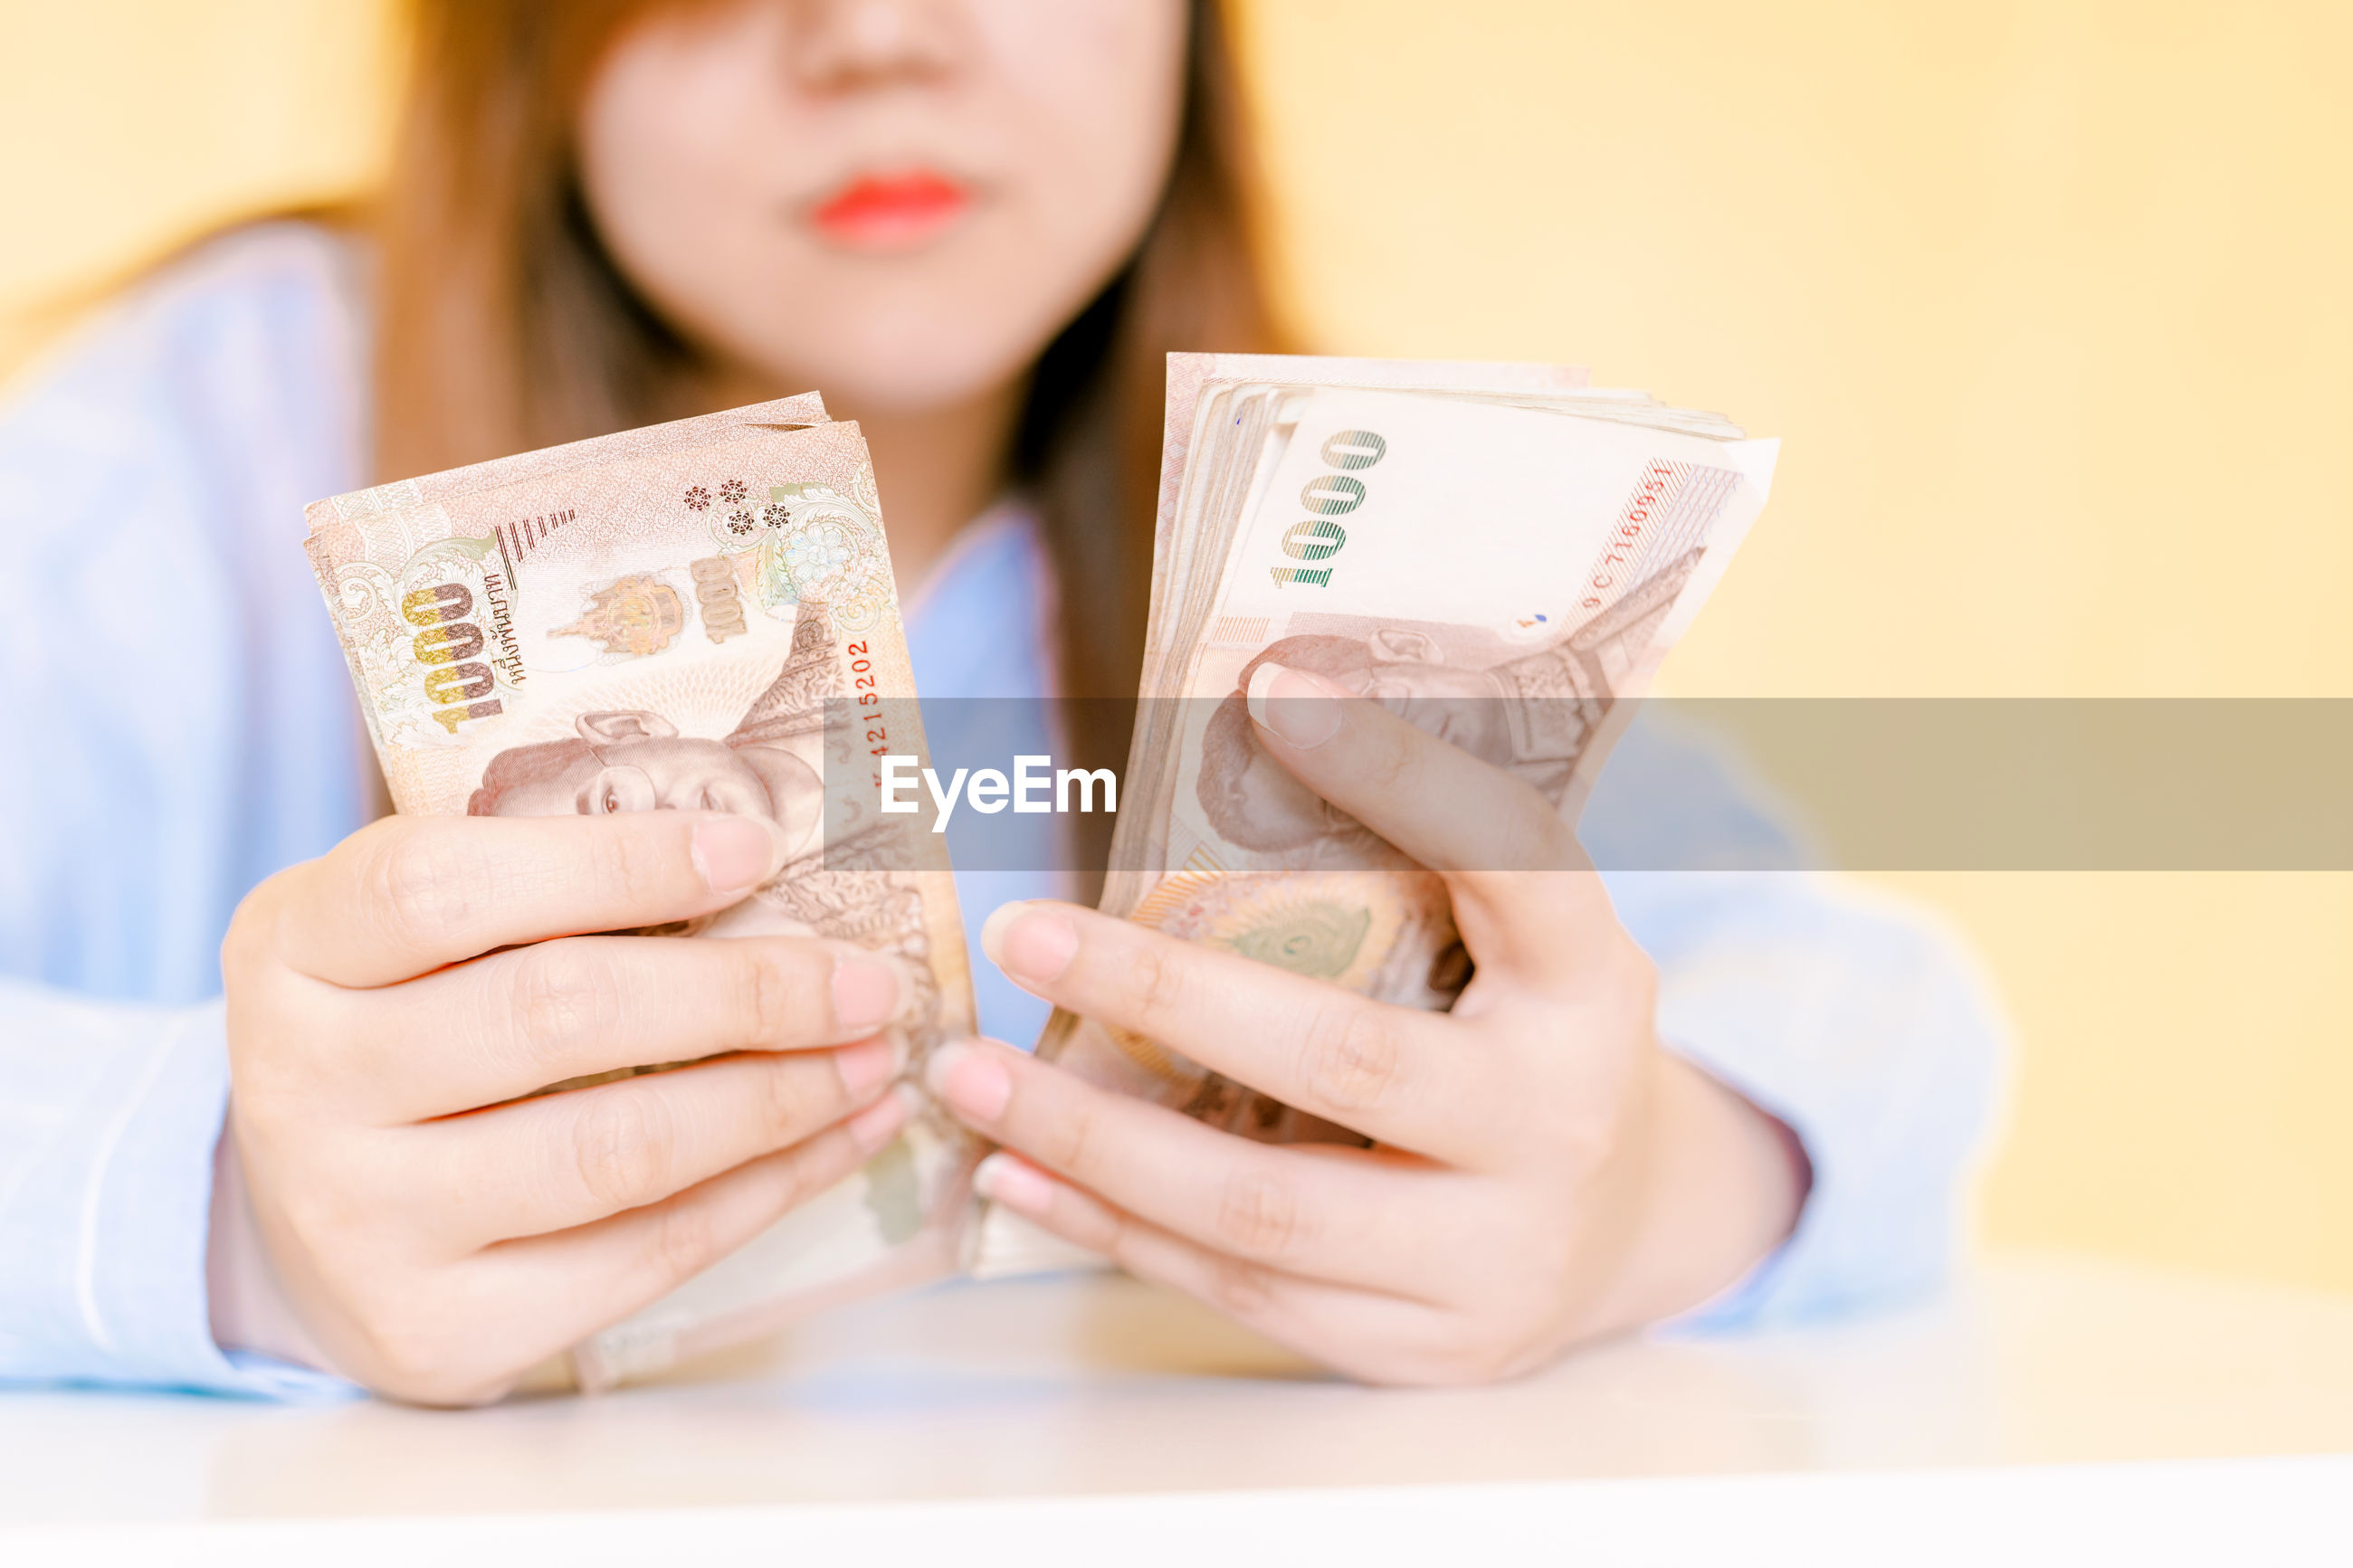 Midsection of woman counting paper currency on table